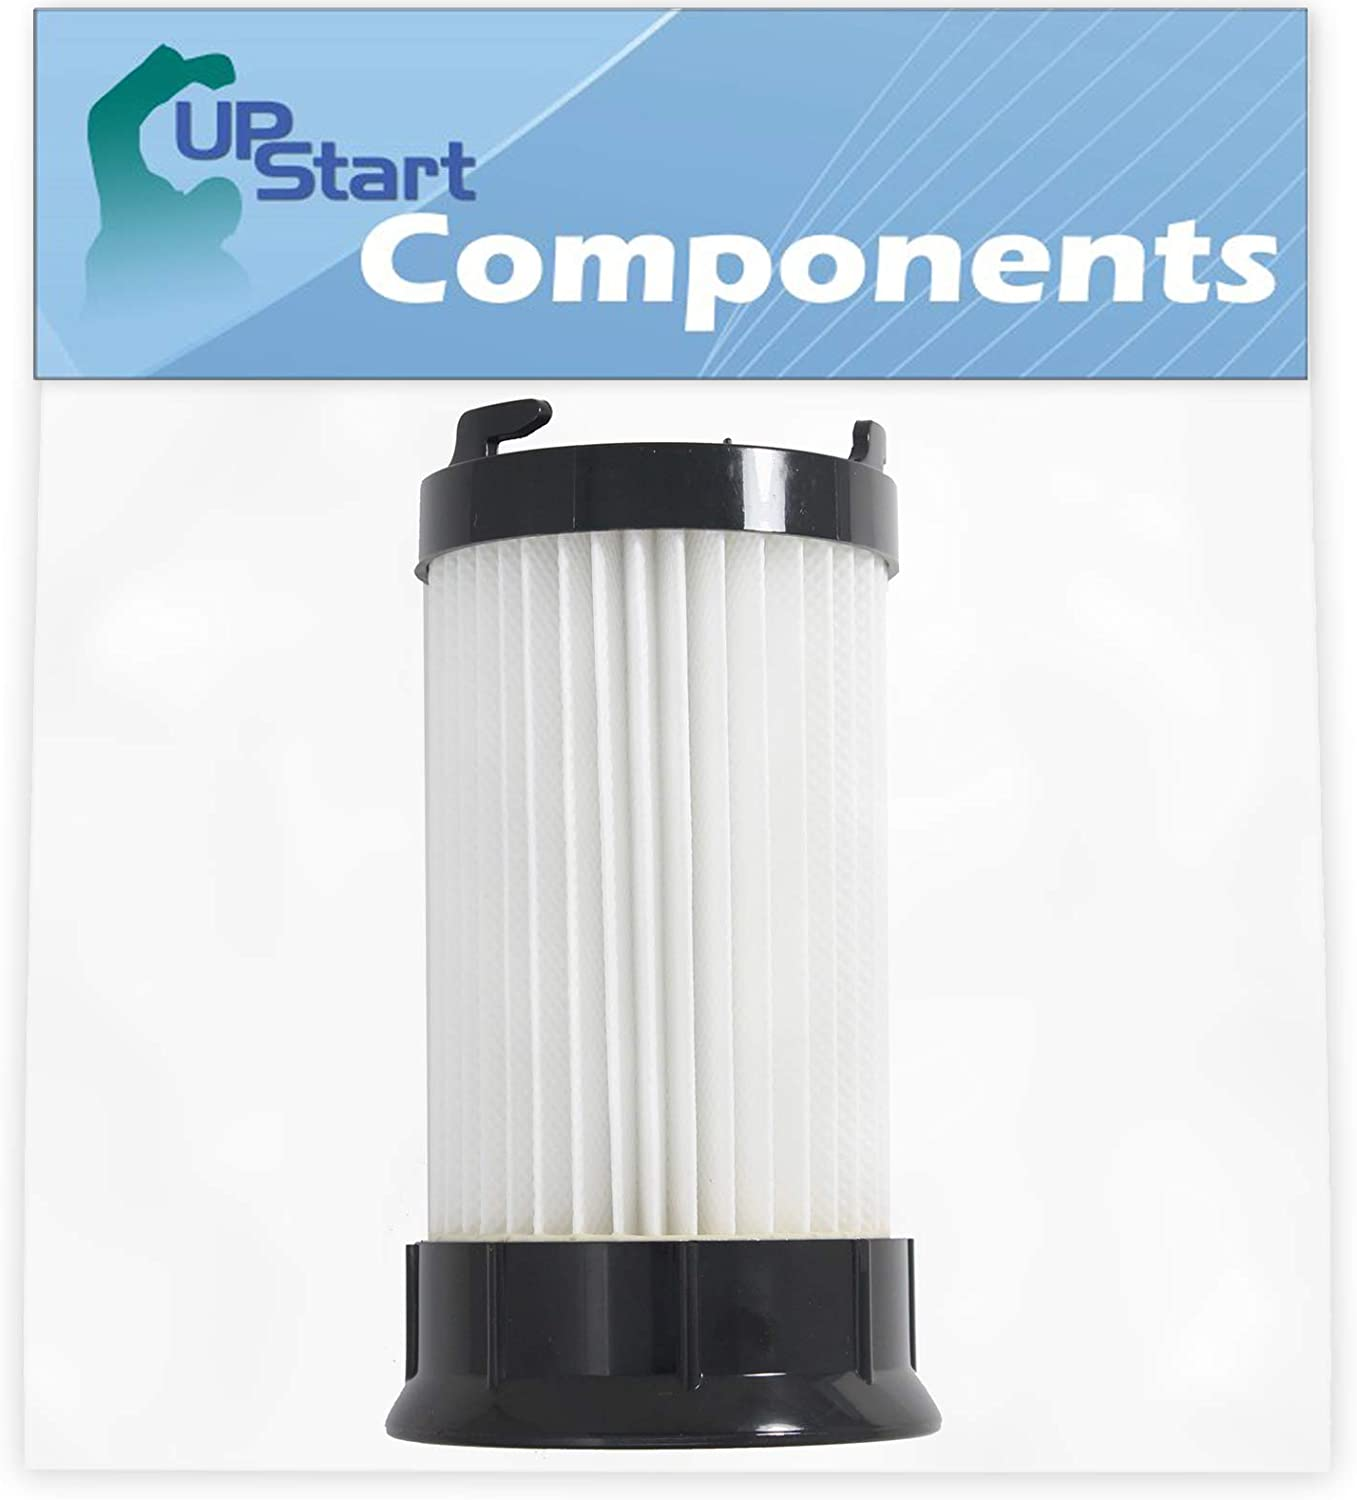 DCF-4 DCF-18 Filter Replacement for GE 106585 Vacuum Cleaner - Compatible with Eureka DCF-4 DCF-18 HEPA Dust Cup Filter